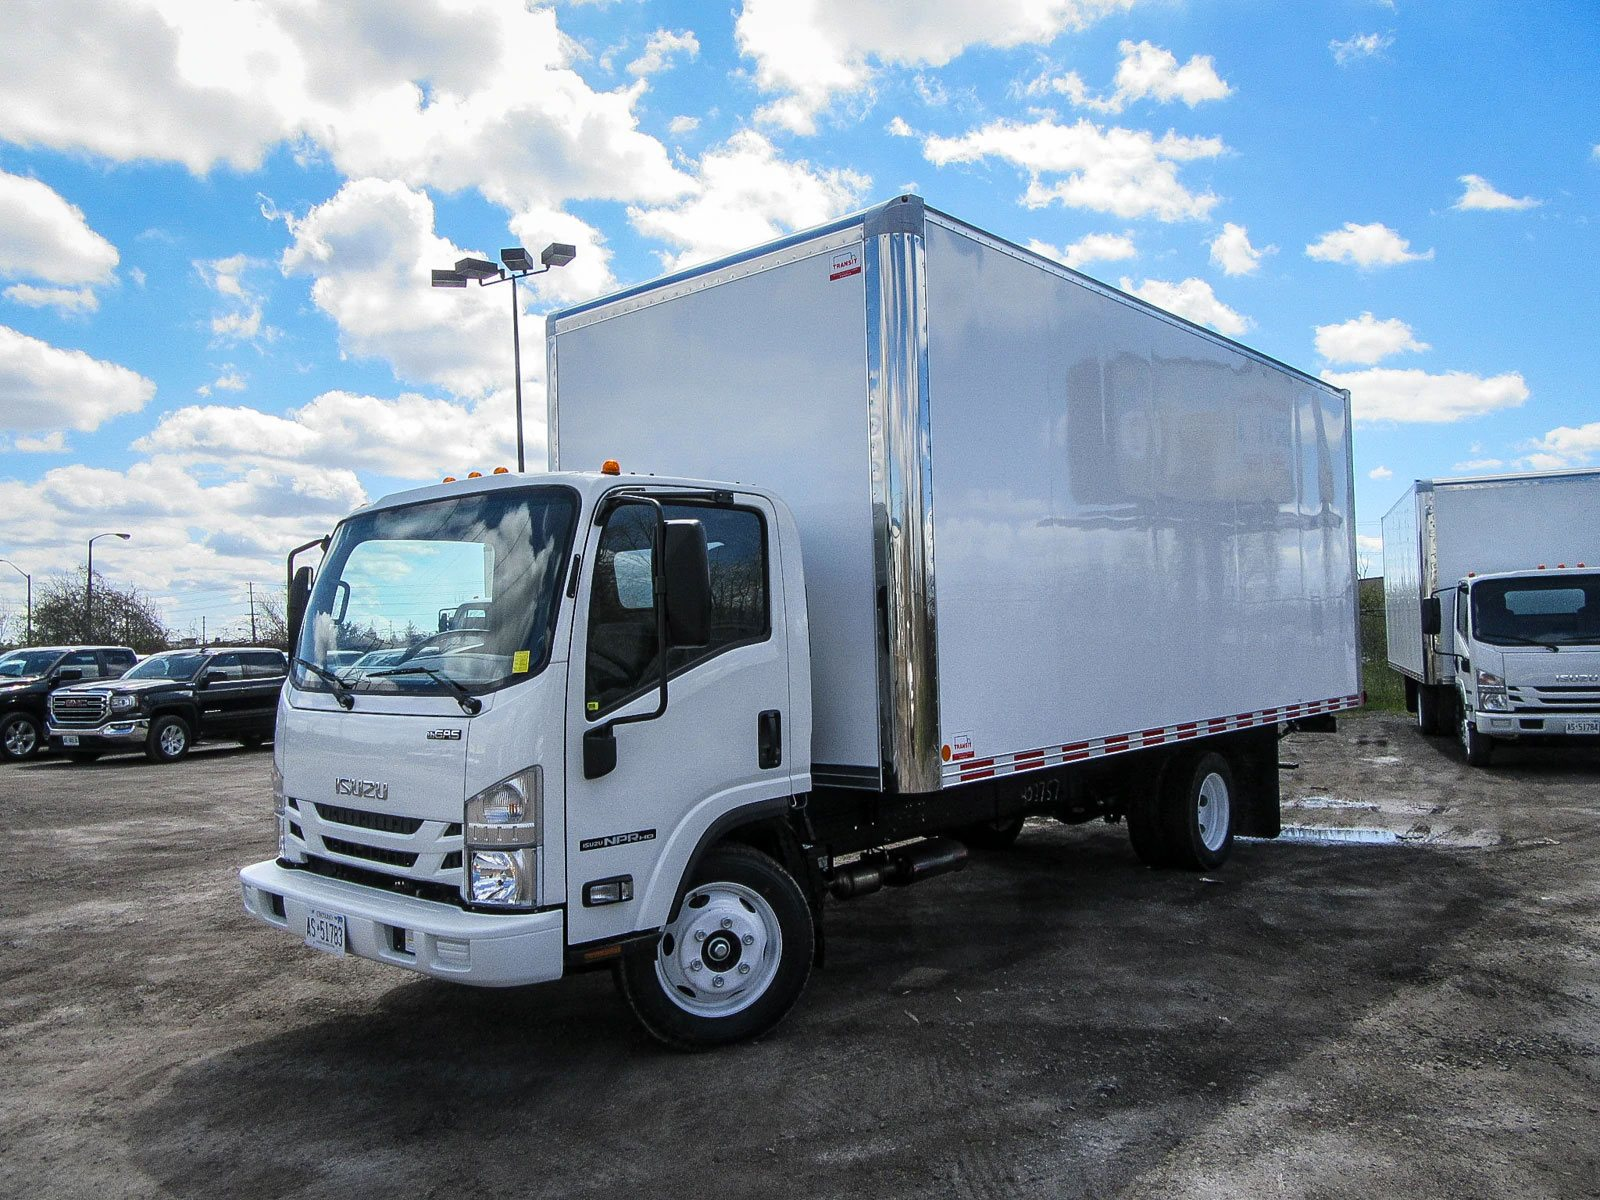 Used 2017 Isuzu NPR 20ft Cube Truck